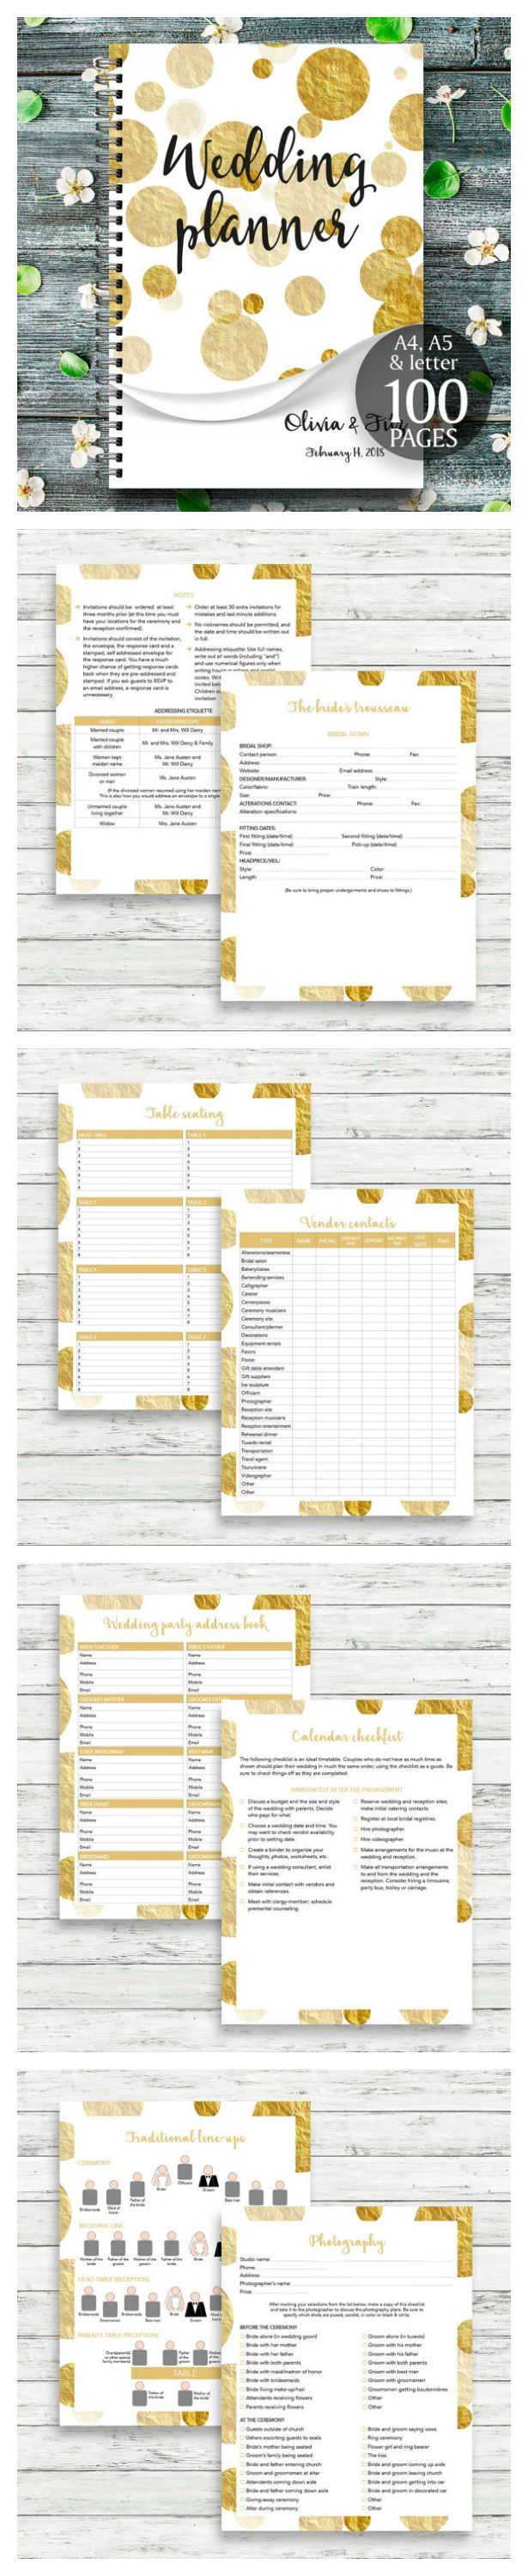 wedding planning checklist spreadsheet free%0A Gorgeous and sparkly complete Wedding Planner  This is a wedding planner  with     unique pages  including personalised cover page   each page can be  printed